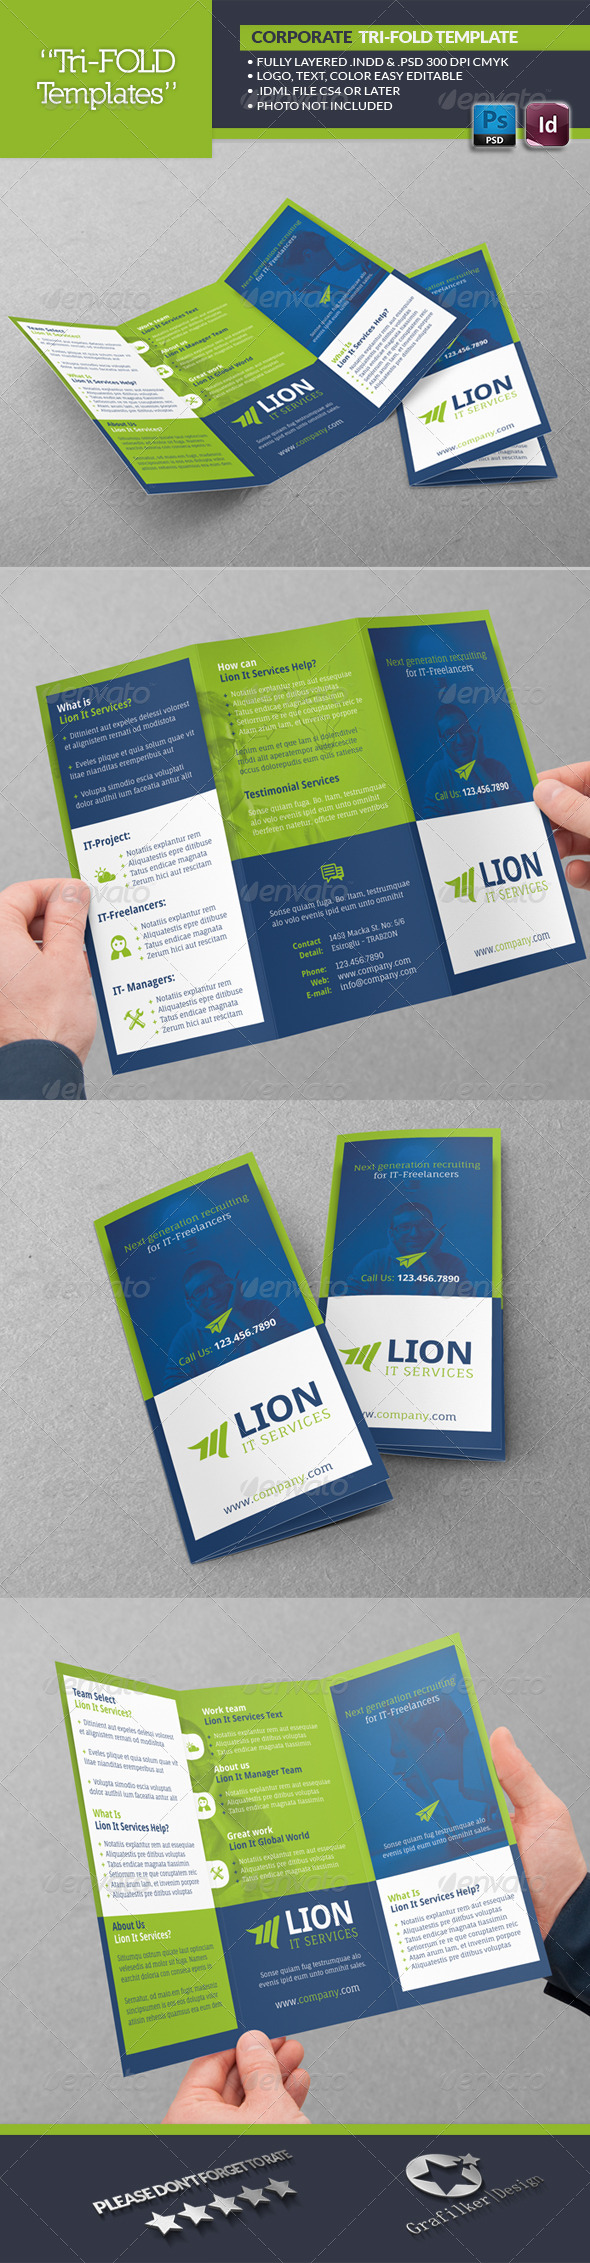 GraphicRiver IT Services Tri-Fold Template 6675720